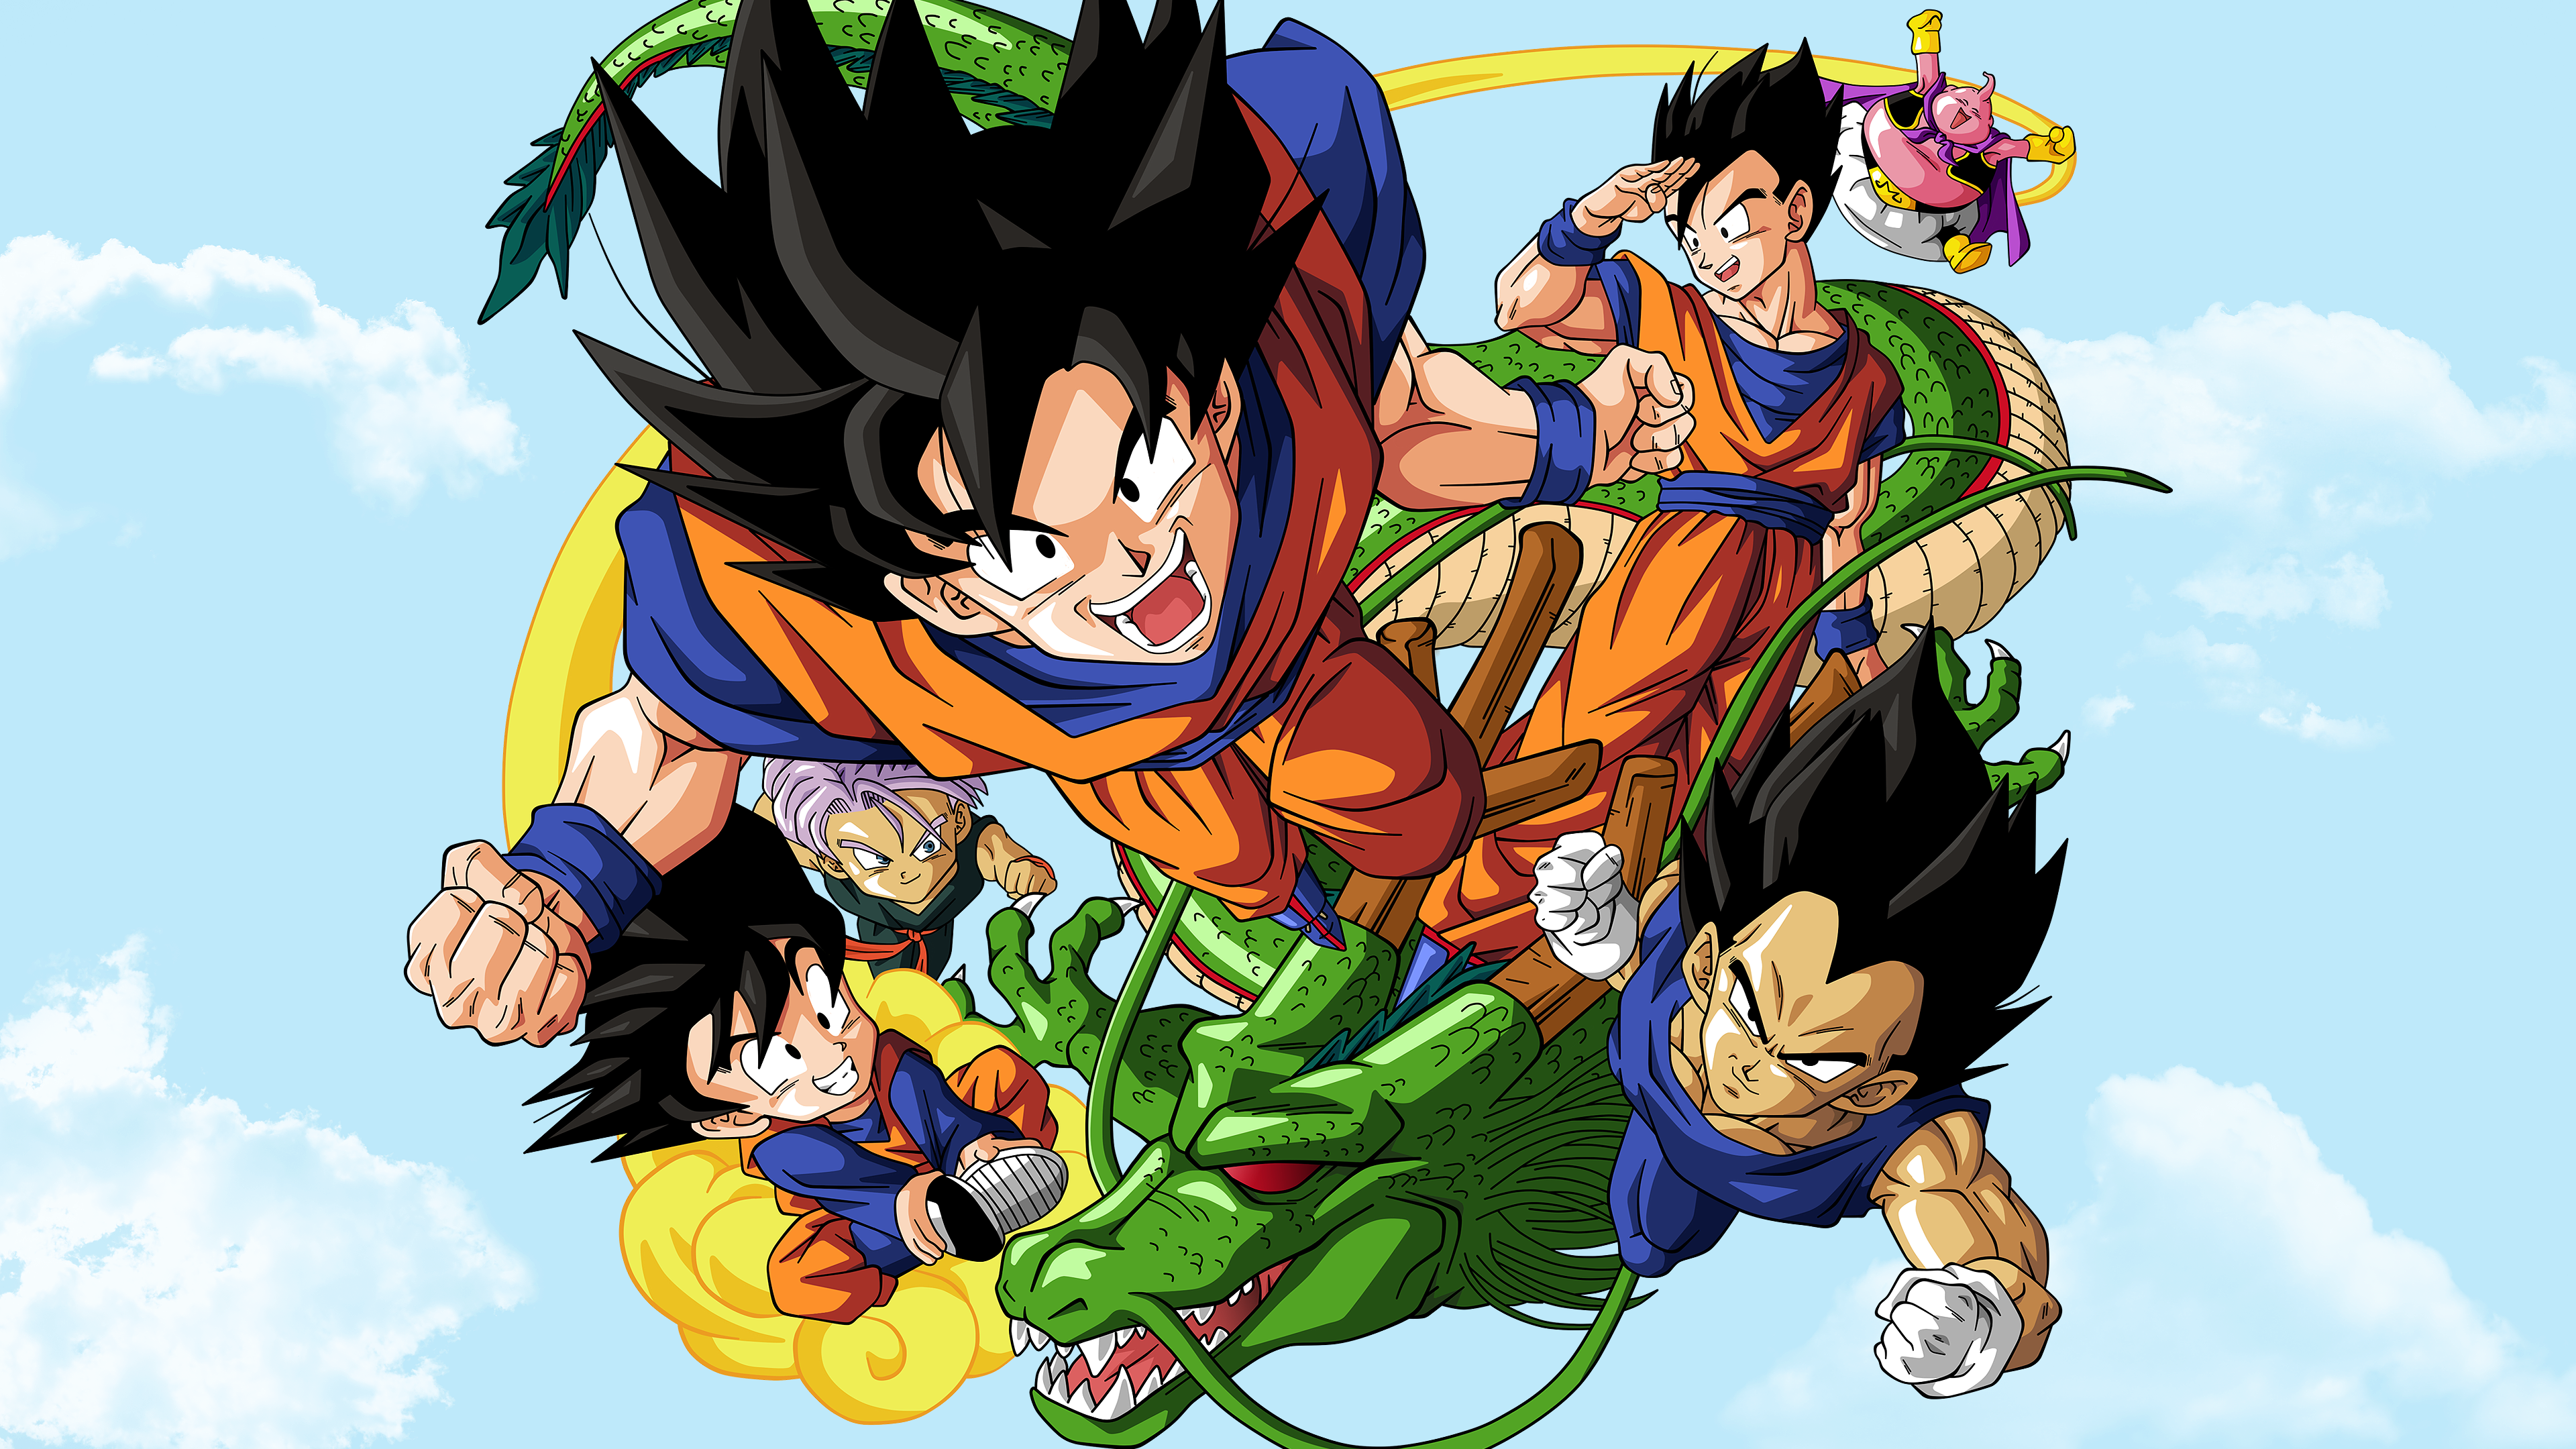 Goku, Gohan, Goten, Vegeta, Trunks, Buu 4K Wallpaper